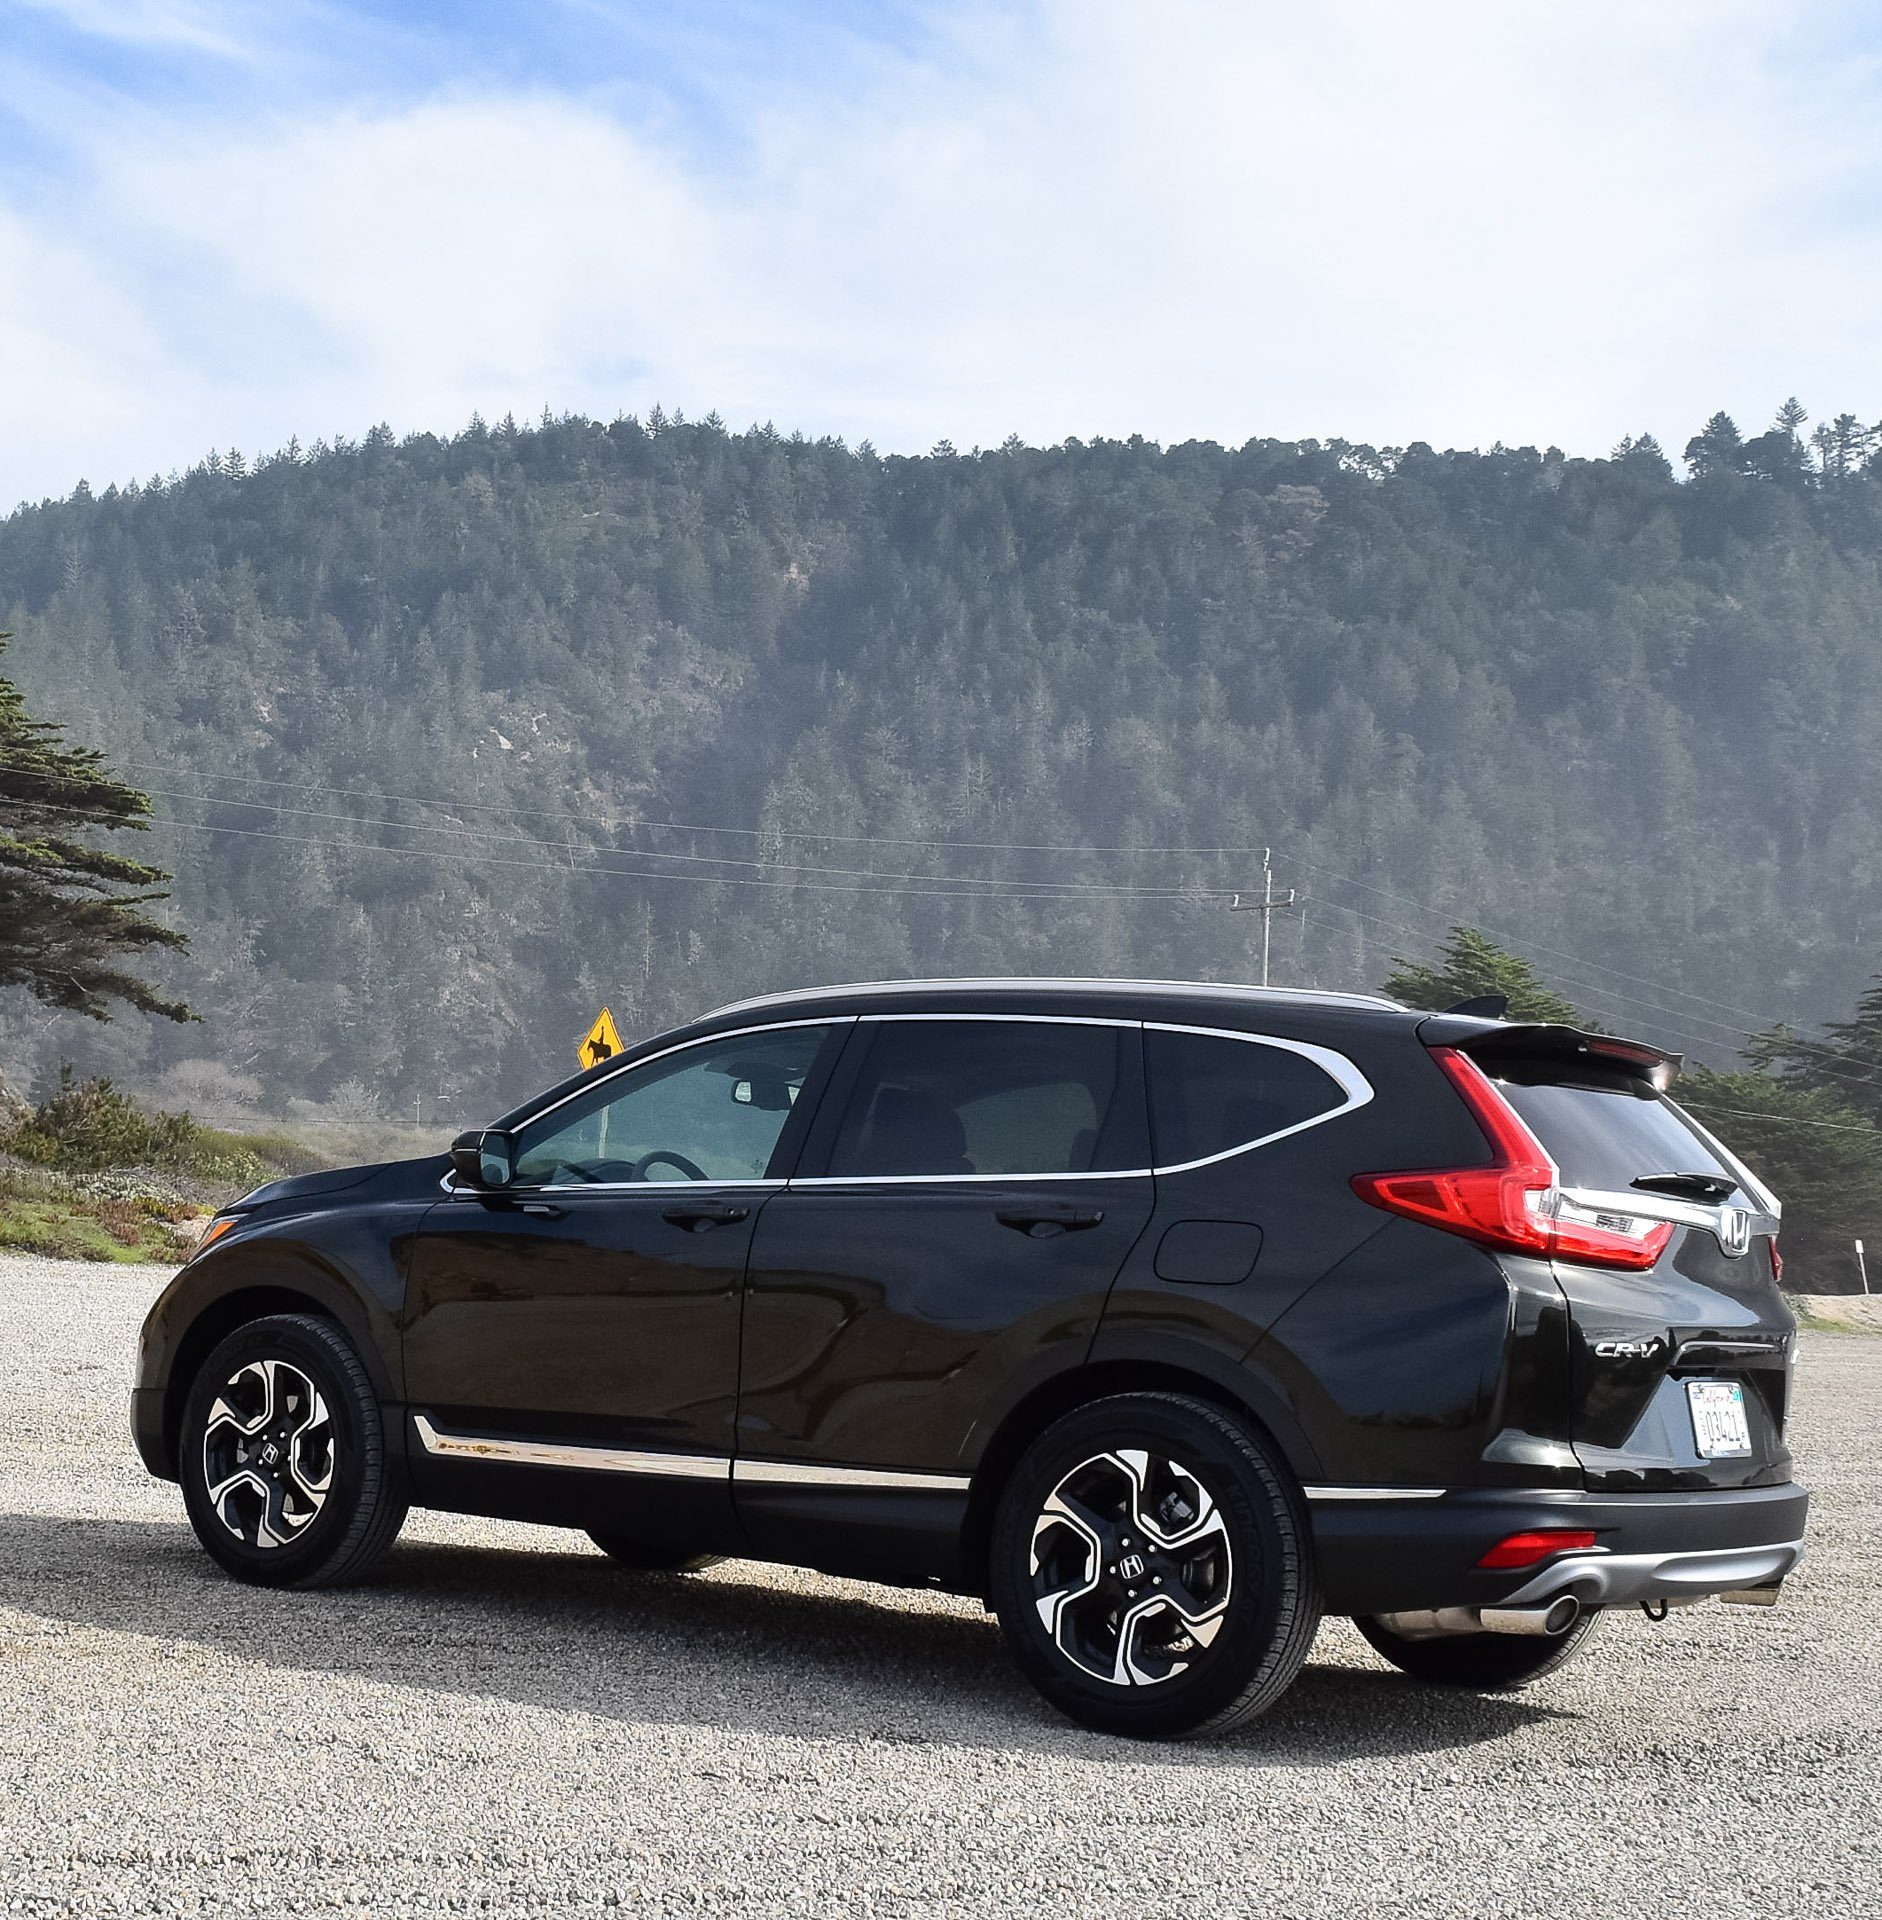 2019 Honda CR-V Review | Top Gear